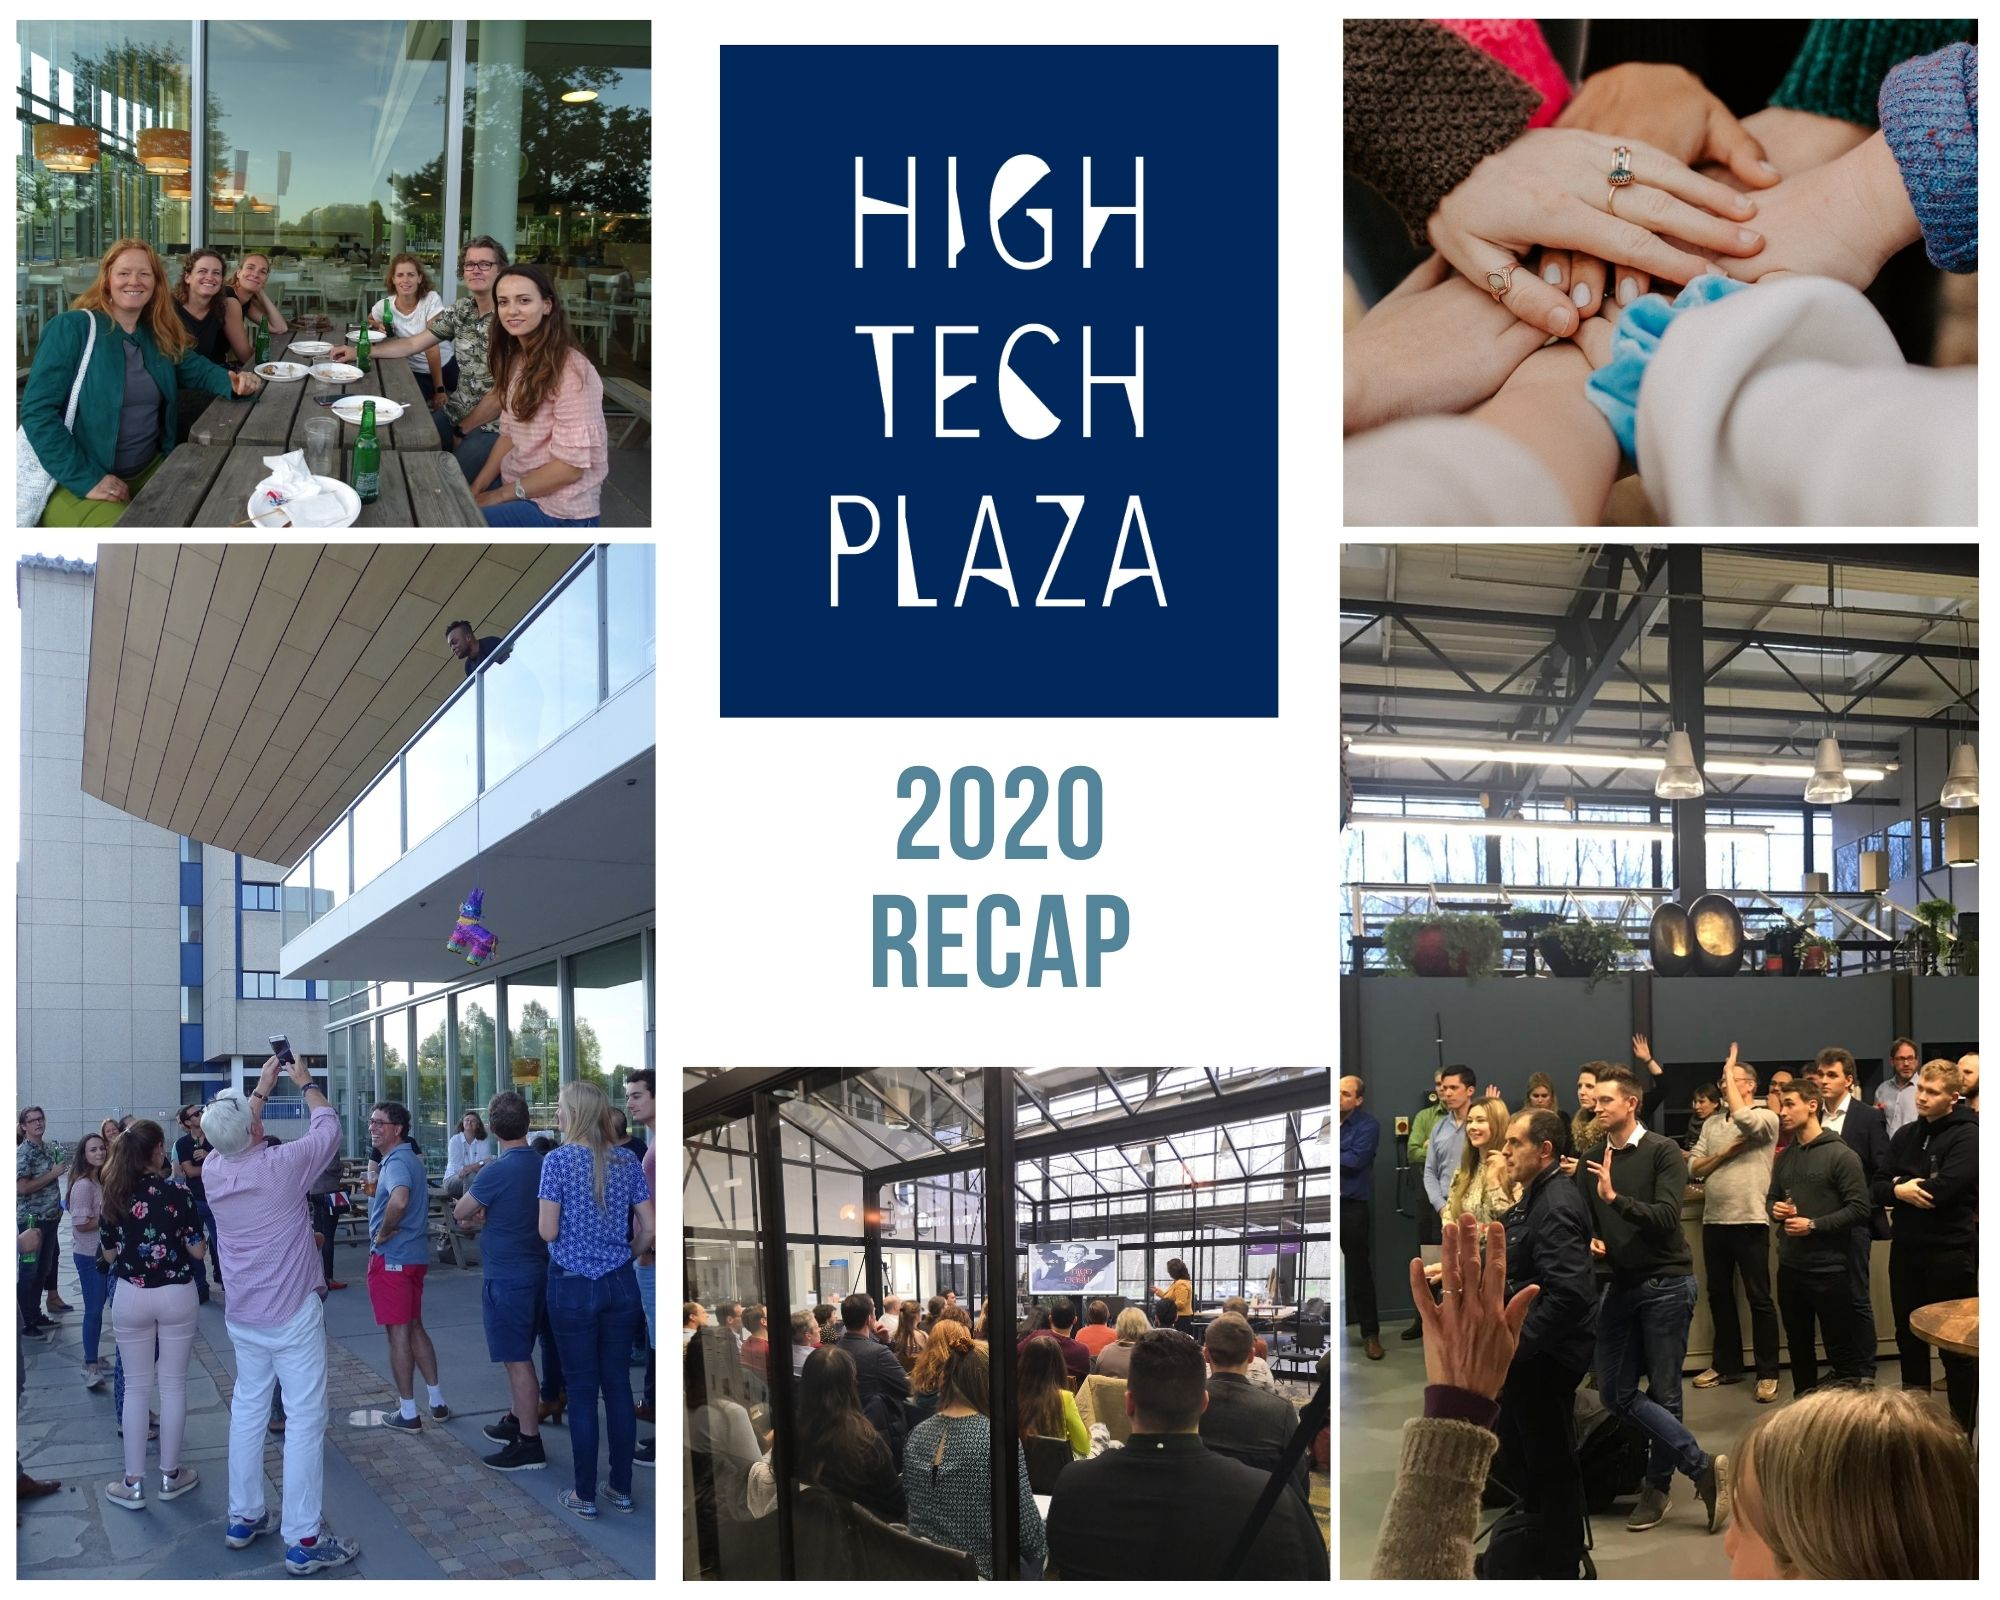 High Tech Plaza 2020 Recap